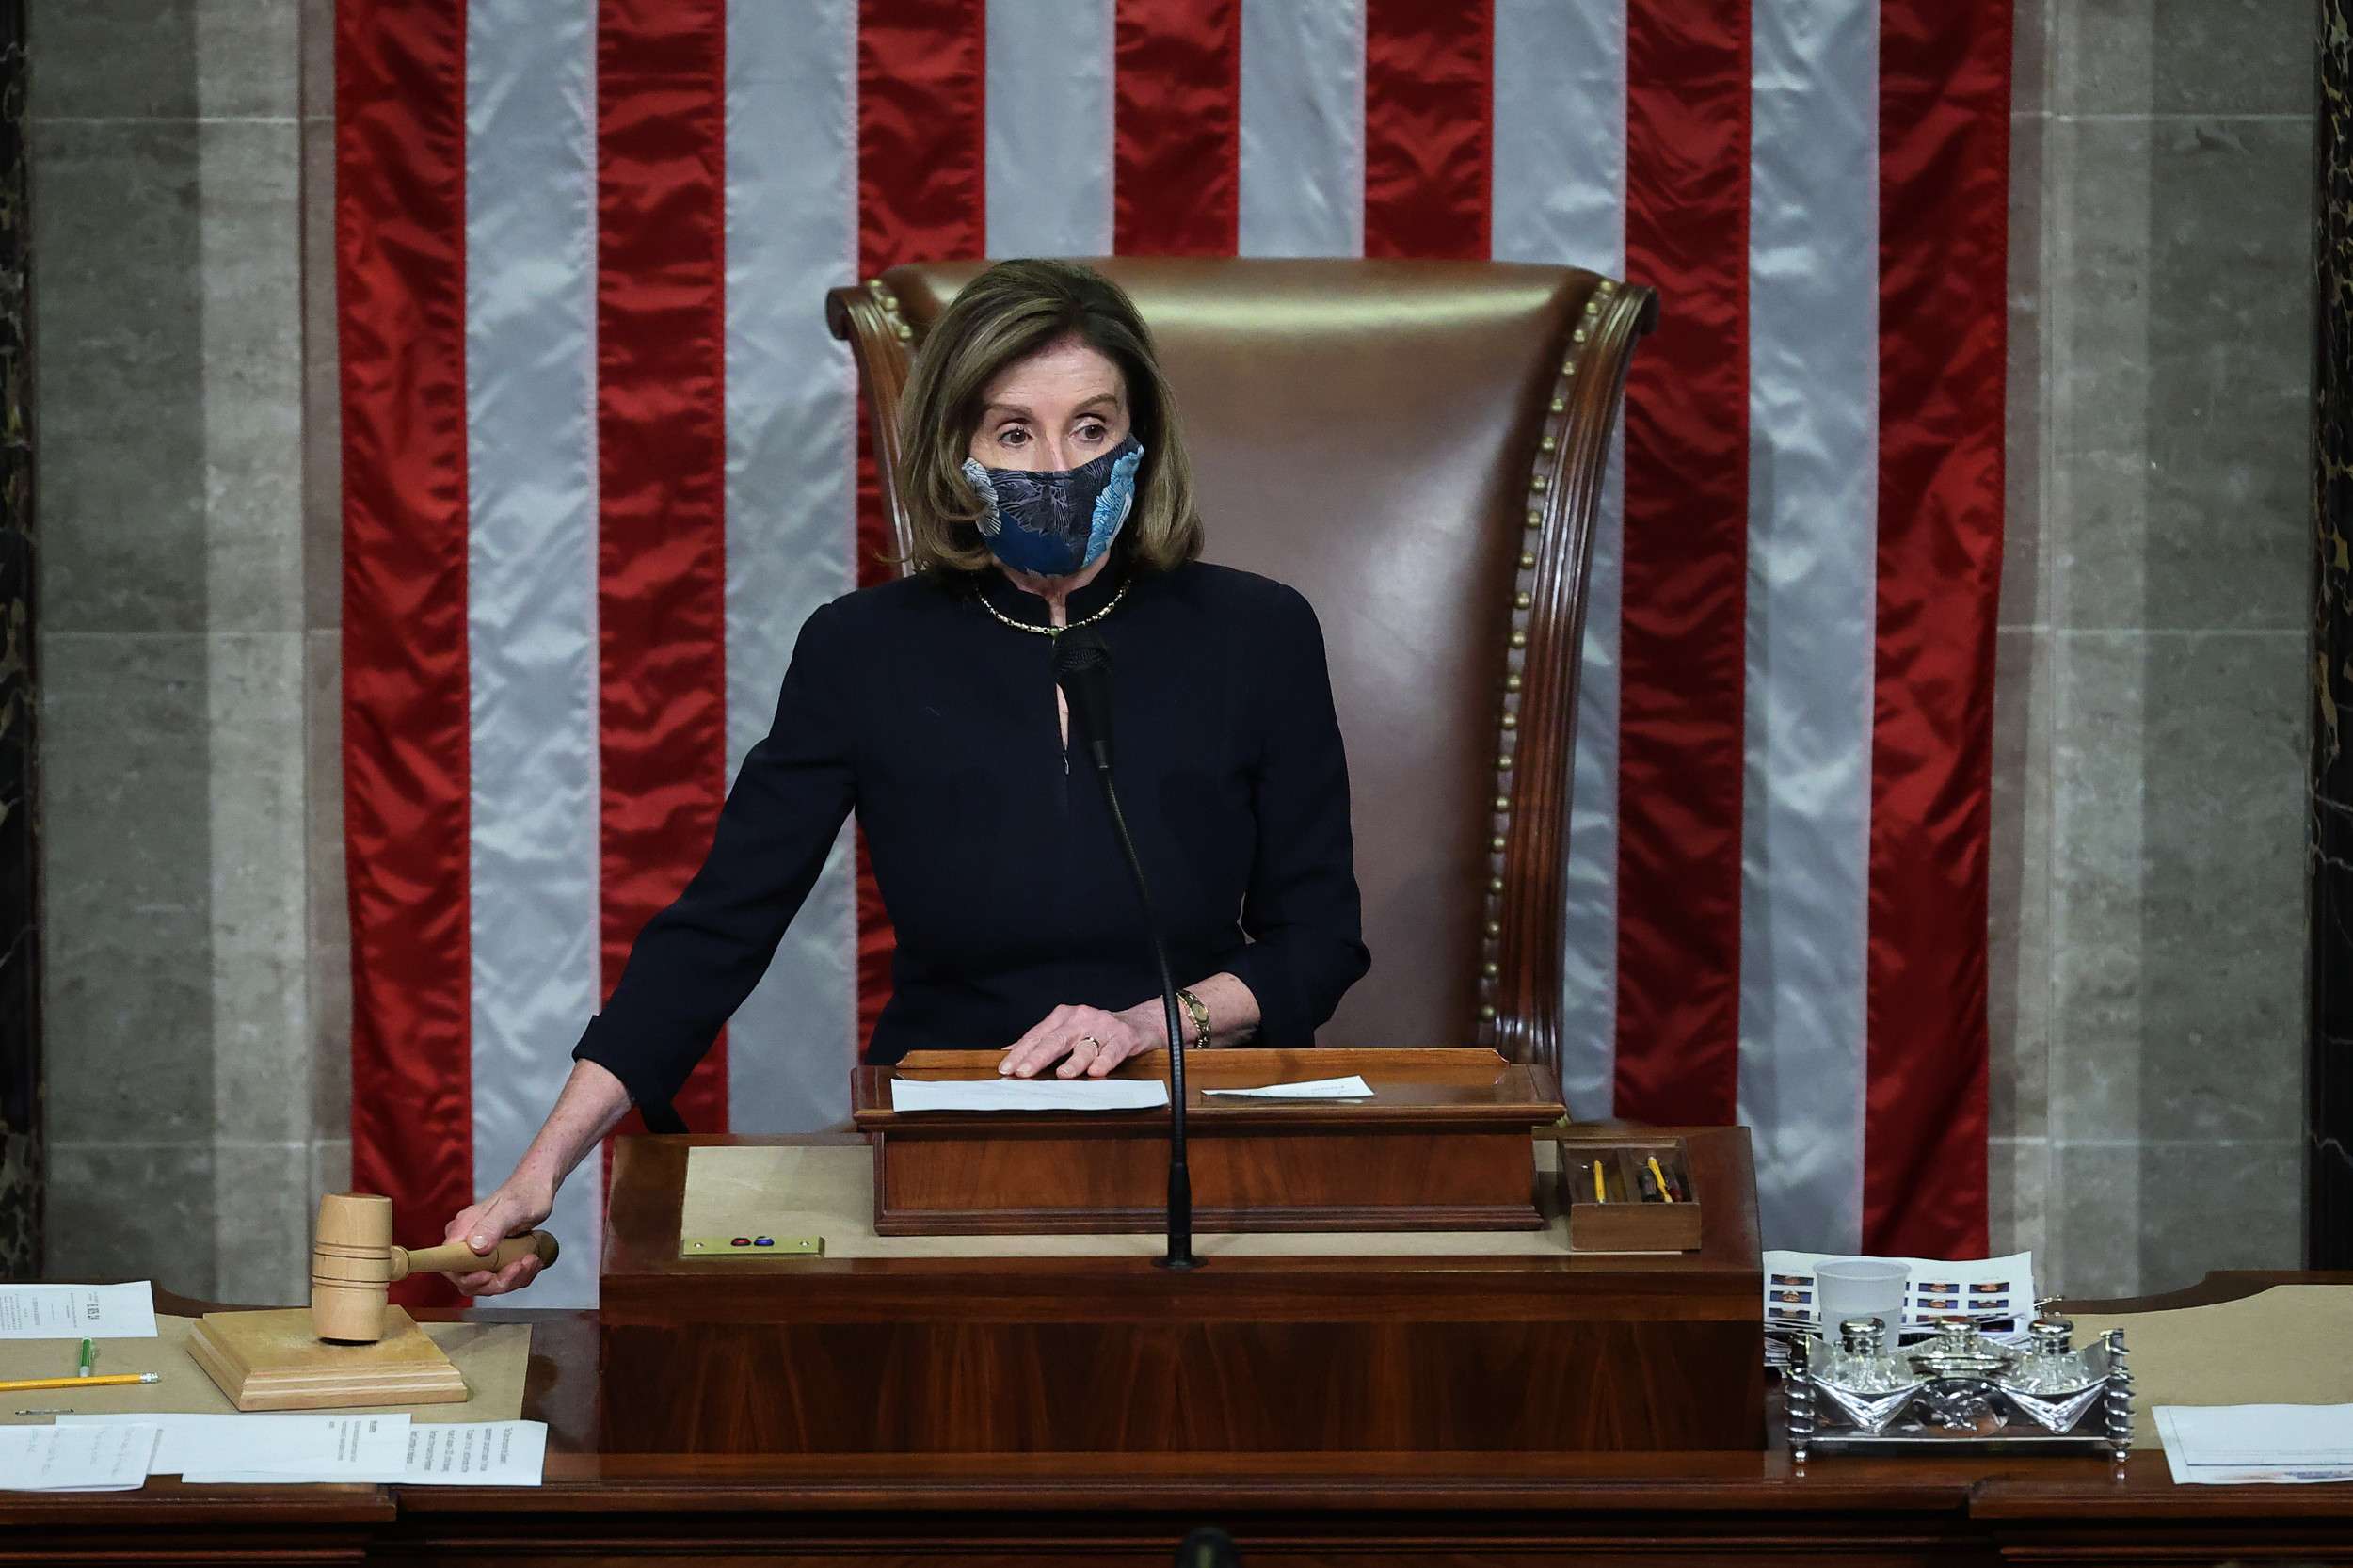 Pelosi Says $5,000 Will Be Deducted From Salaries of Lawmakers Who Bypass Metal Detectors